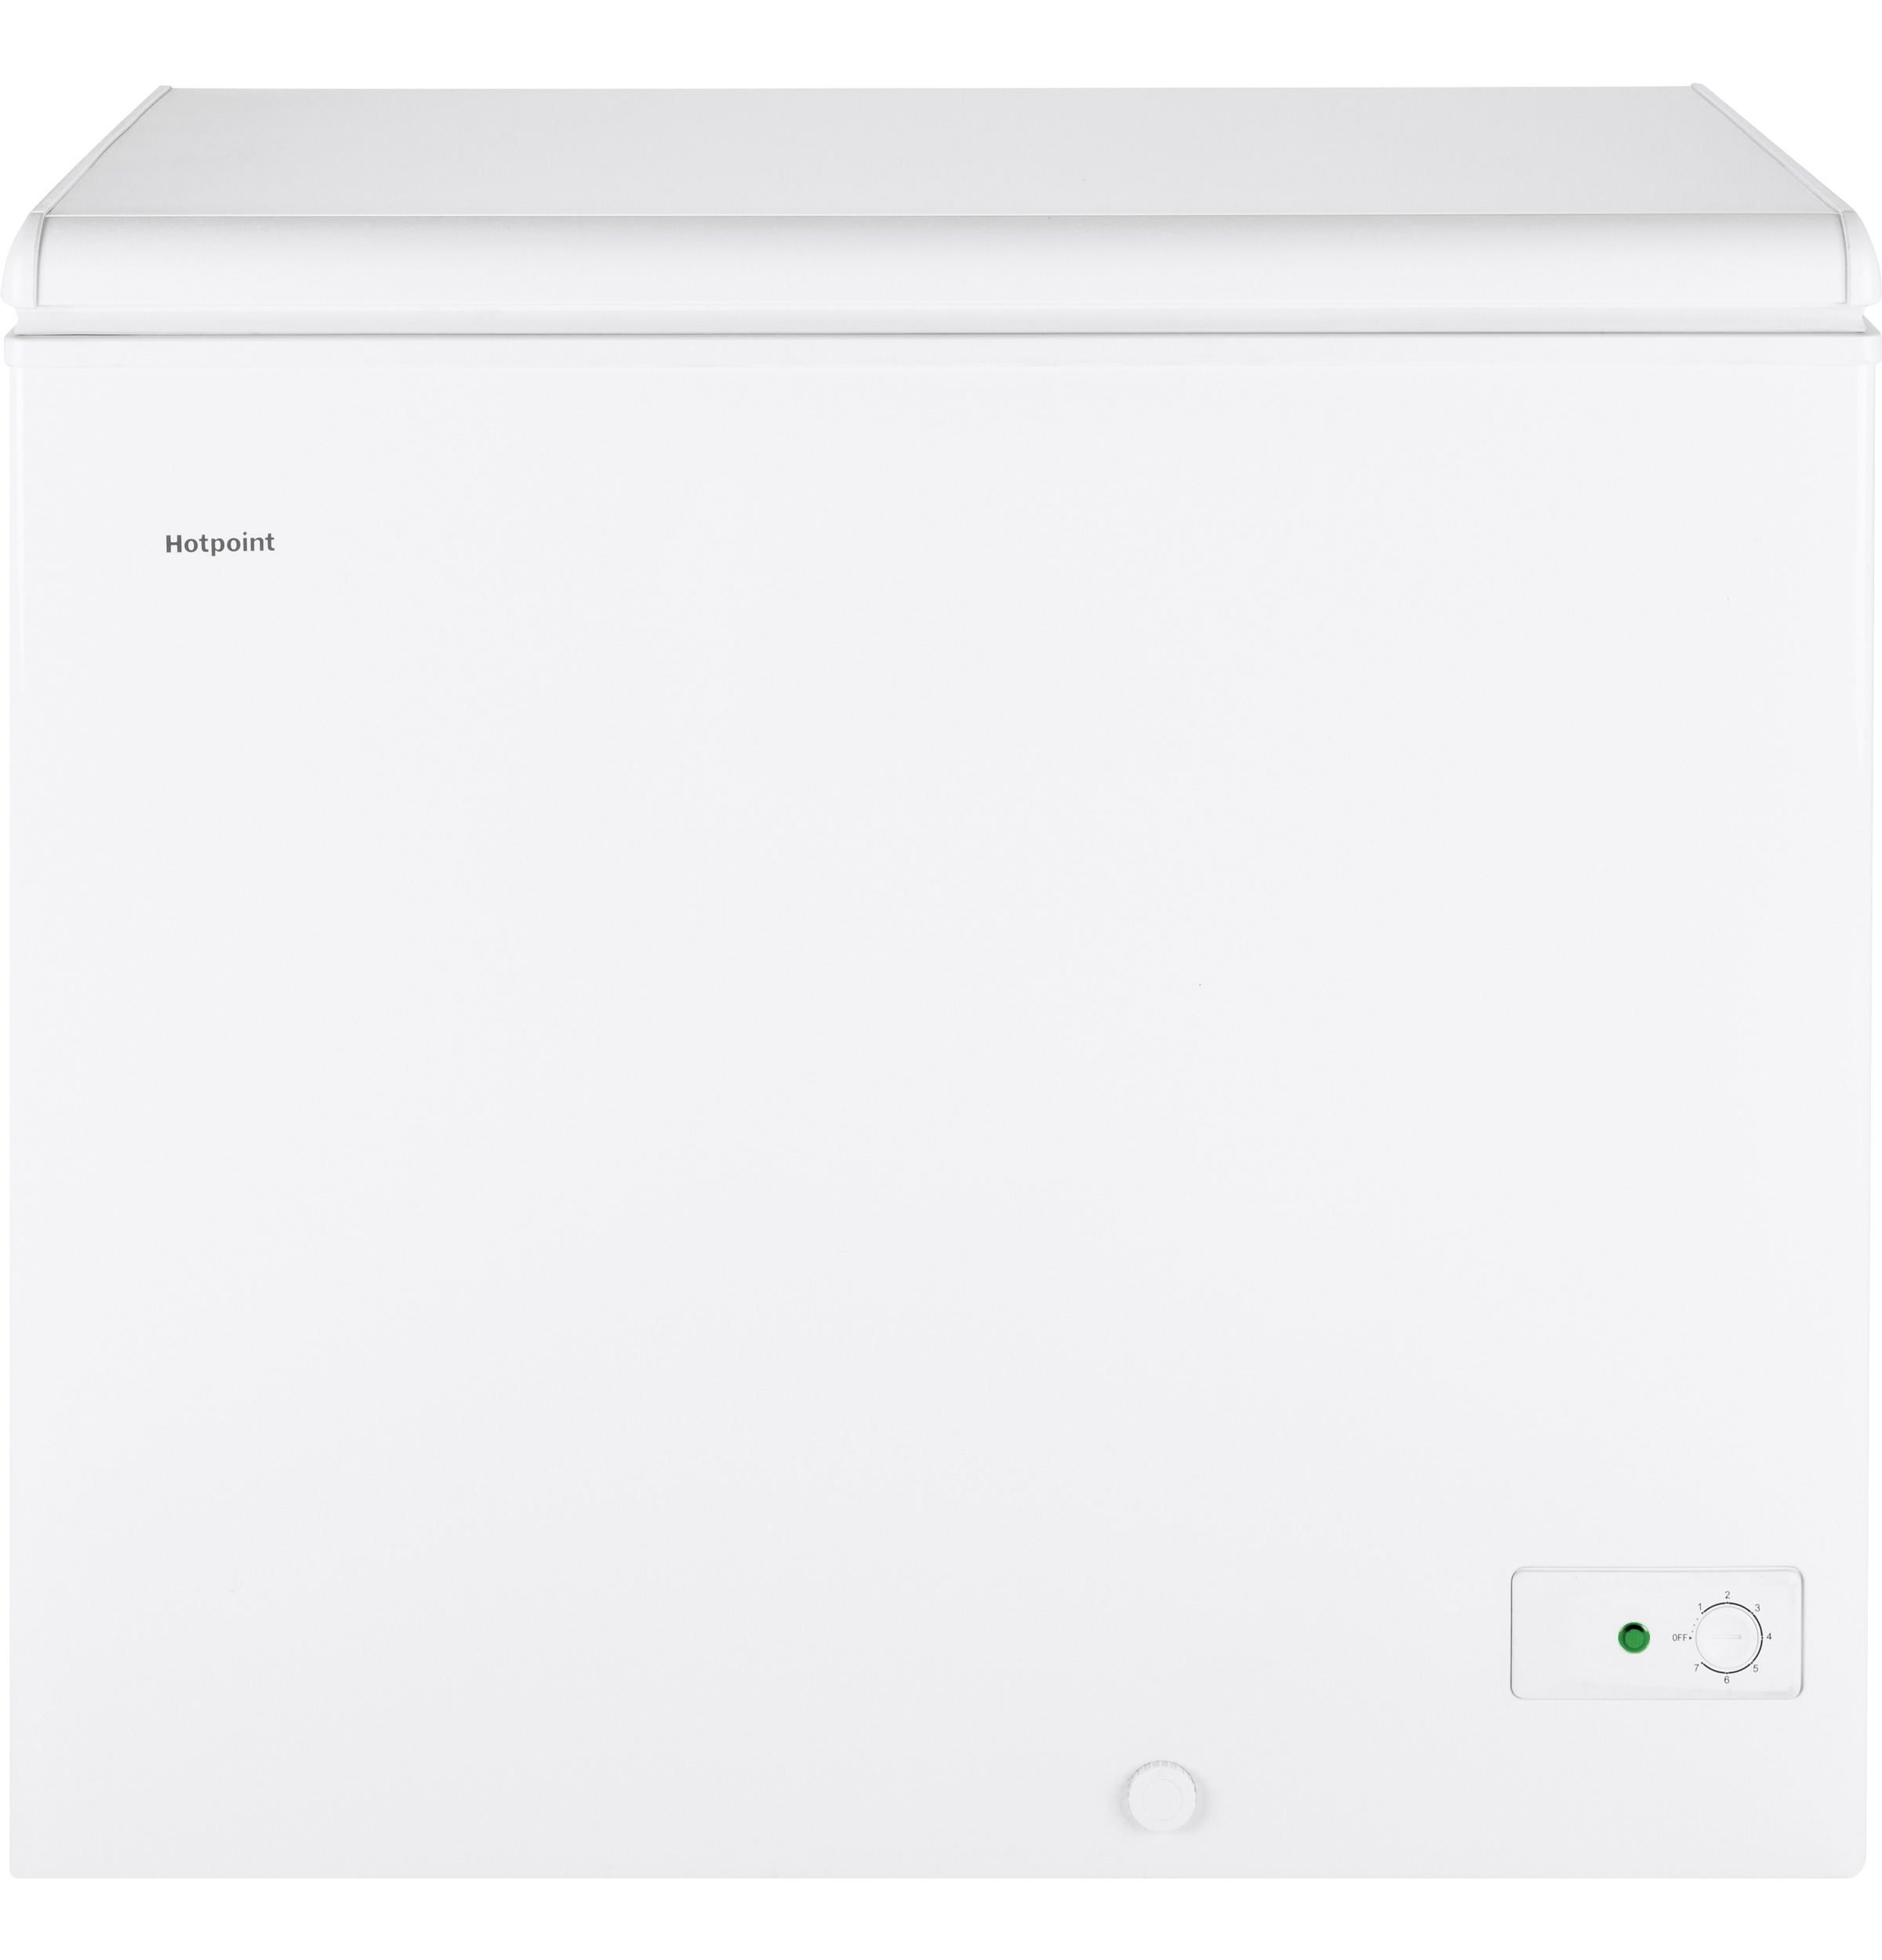 Hotpoint Hotpoint® 7.1 Cu. Ft. Manual Defrost Chest Freezer